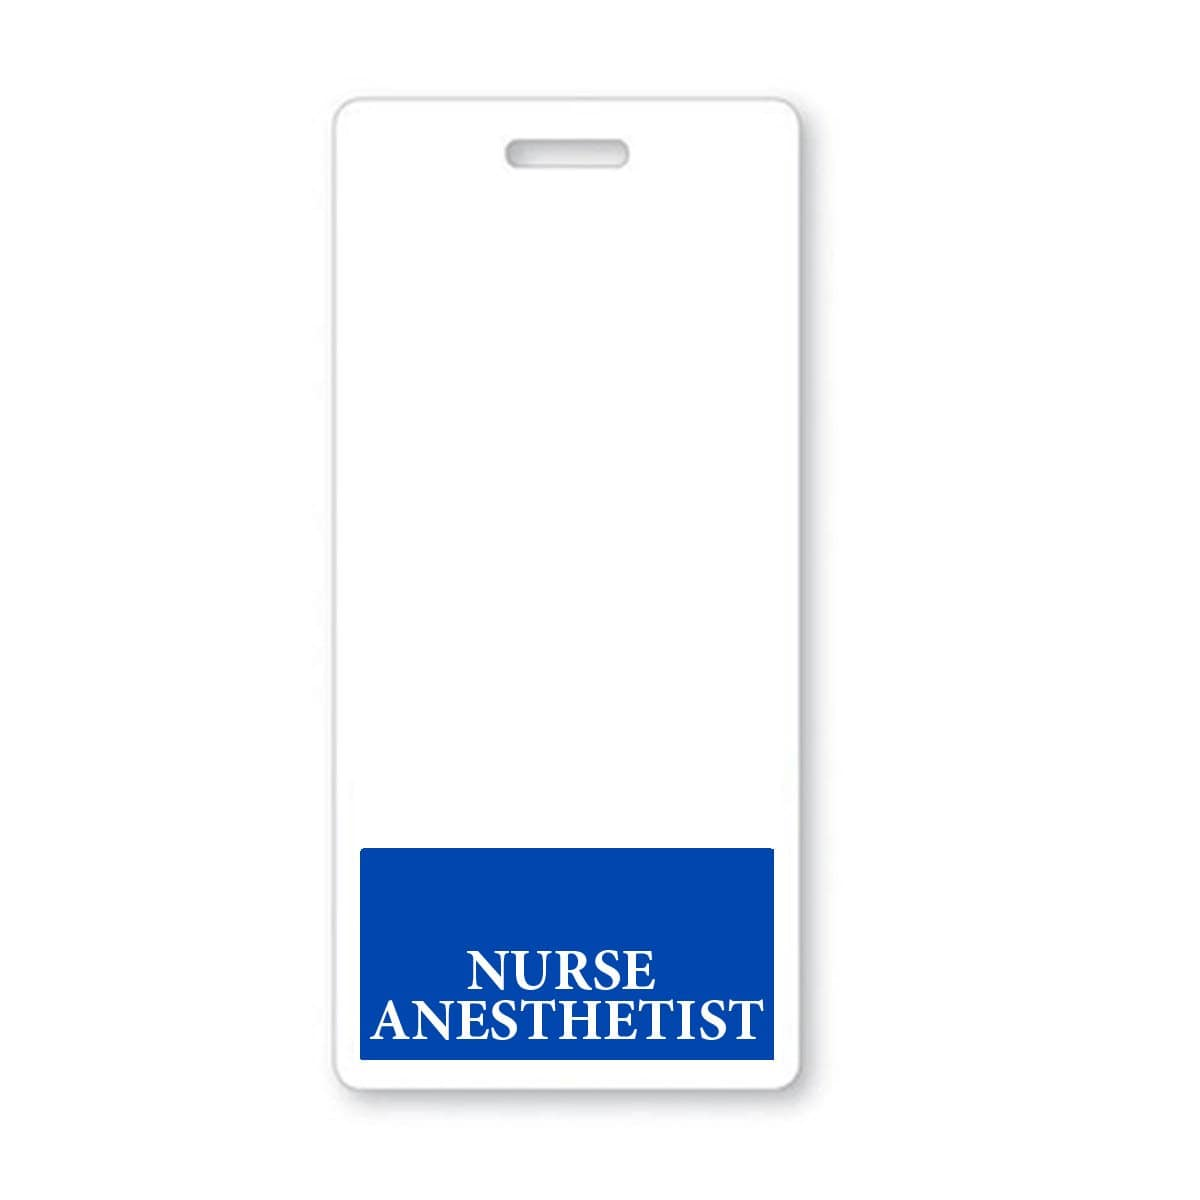 Nurse Anesthetist Vertical Badge Buddy with Blue Border